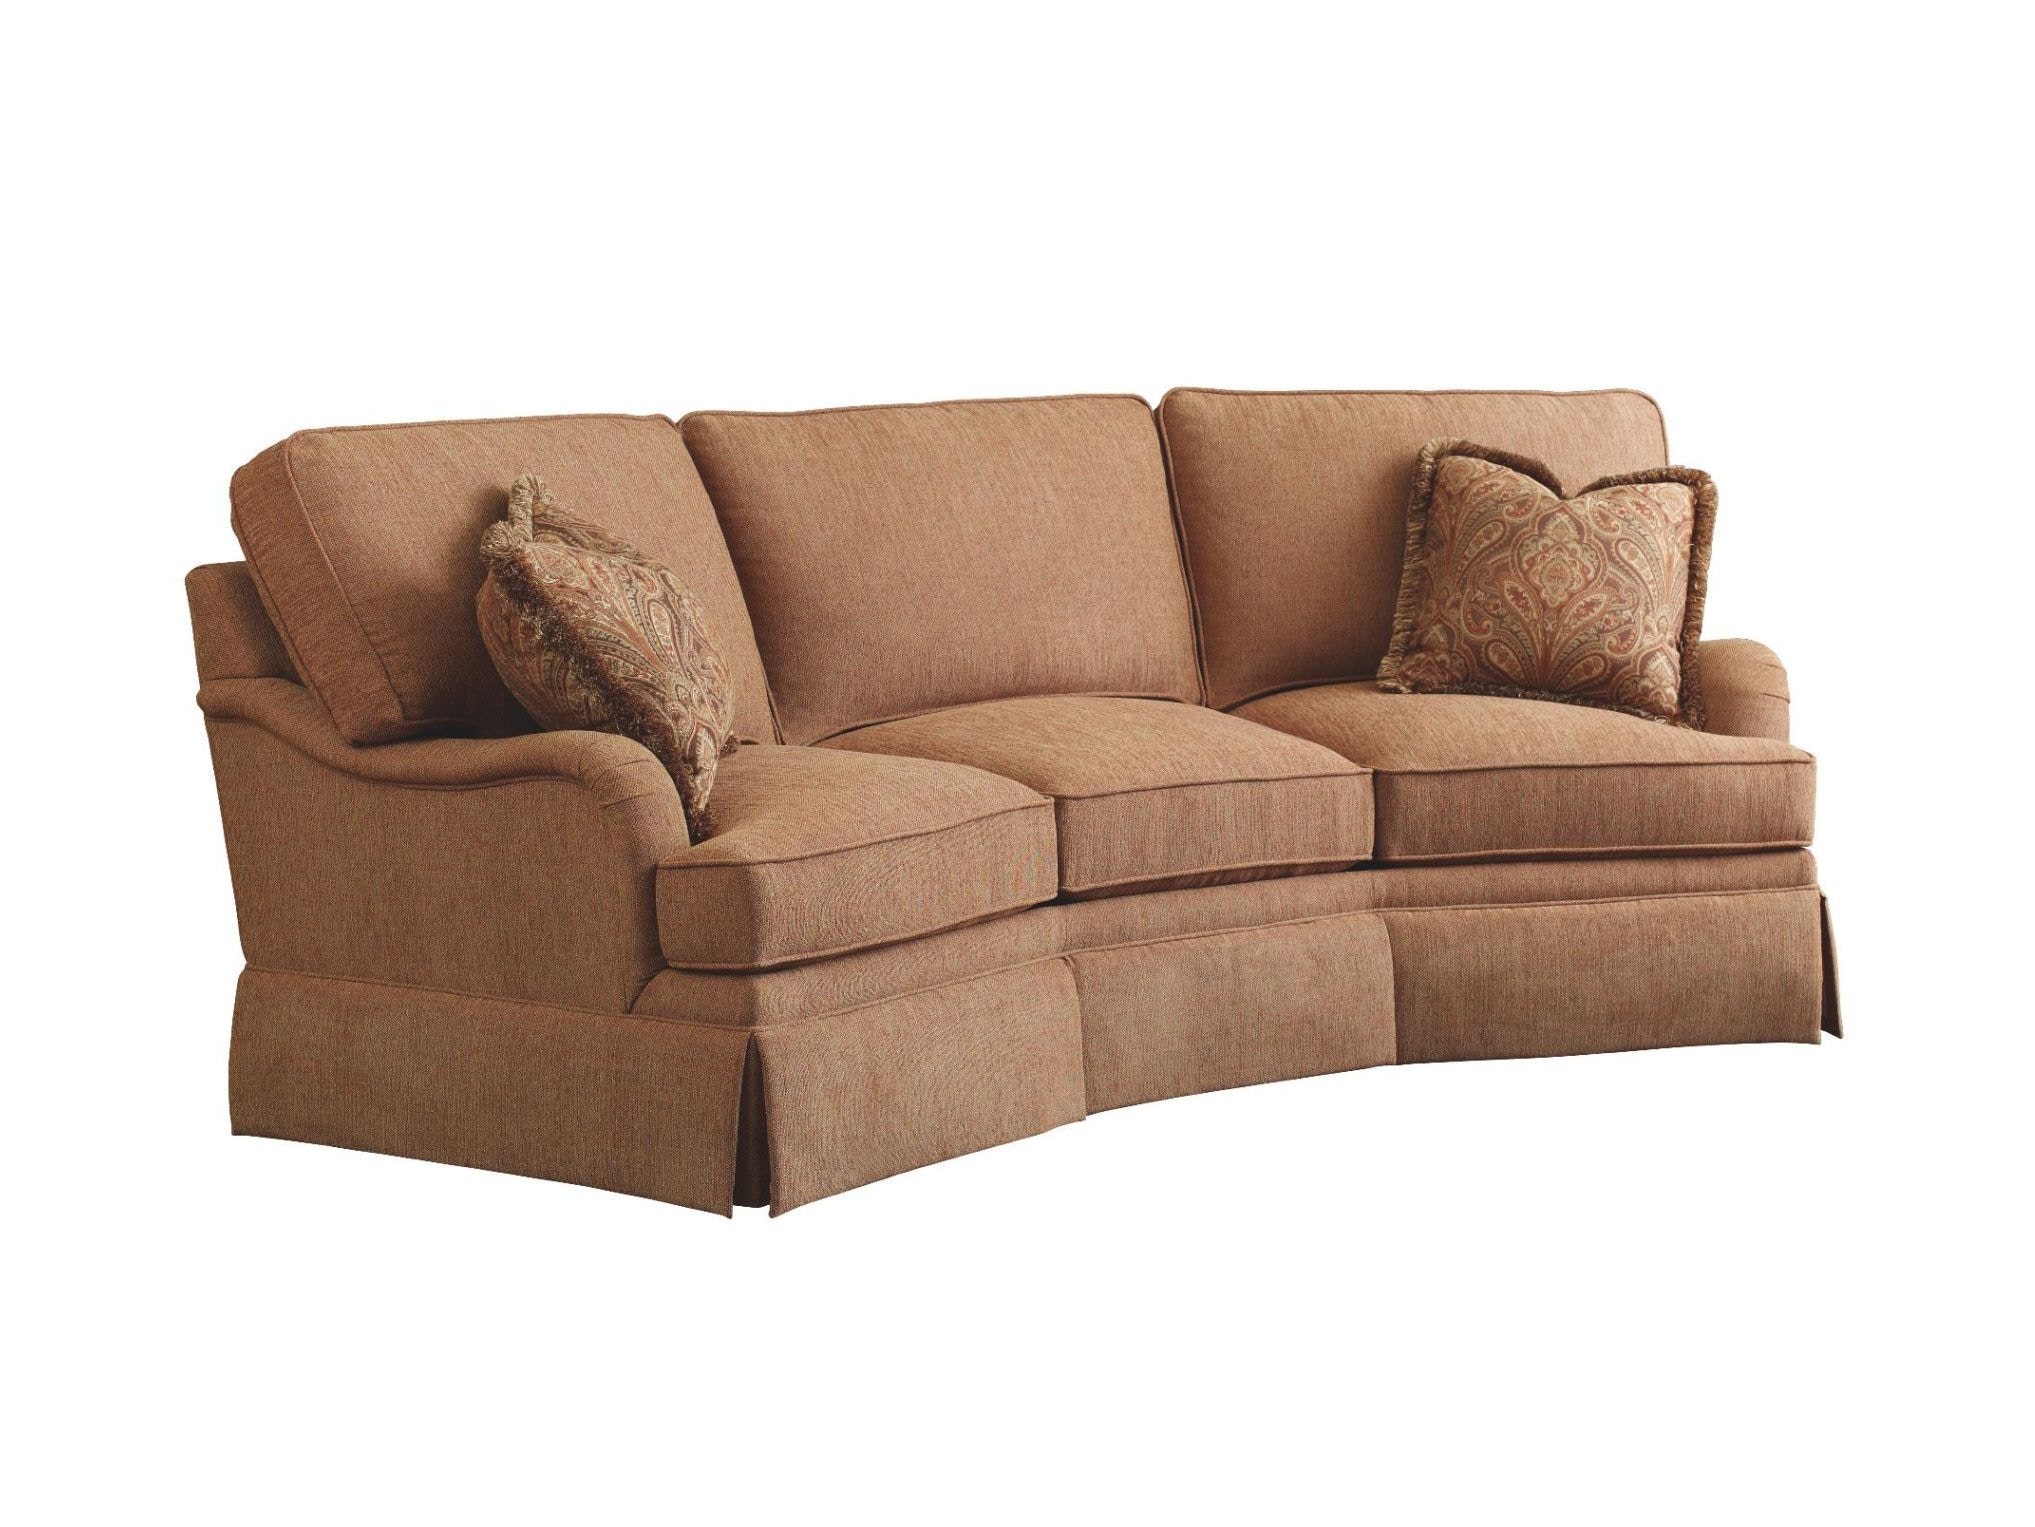 Marketplace F Wedge Sofa English With Skirt MR4101ES01 From Walter E.  Smithe Furniture +